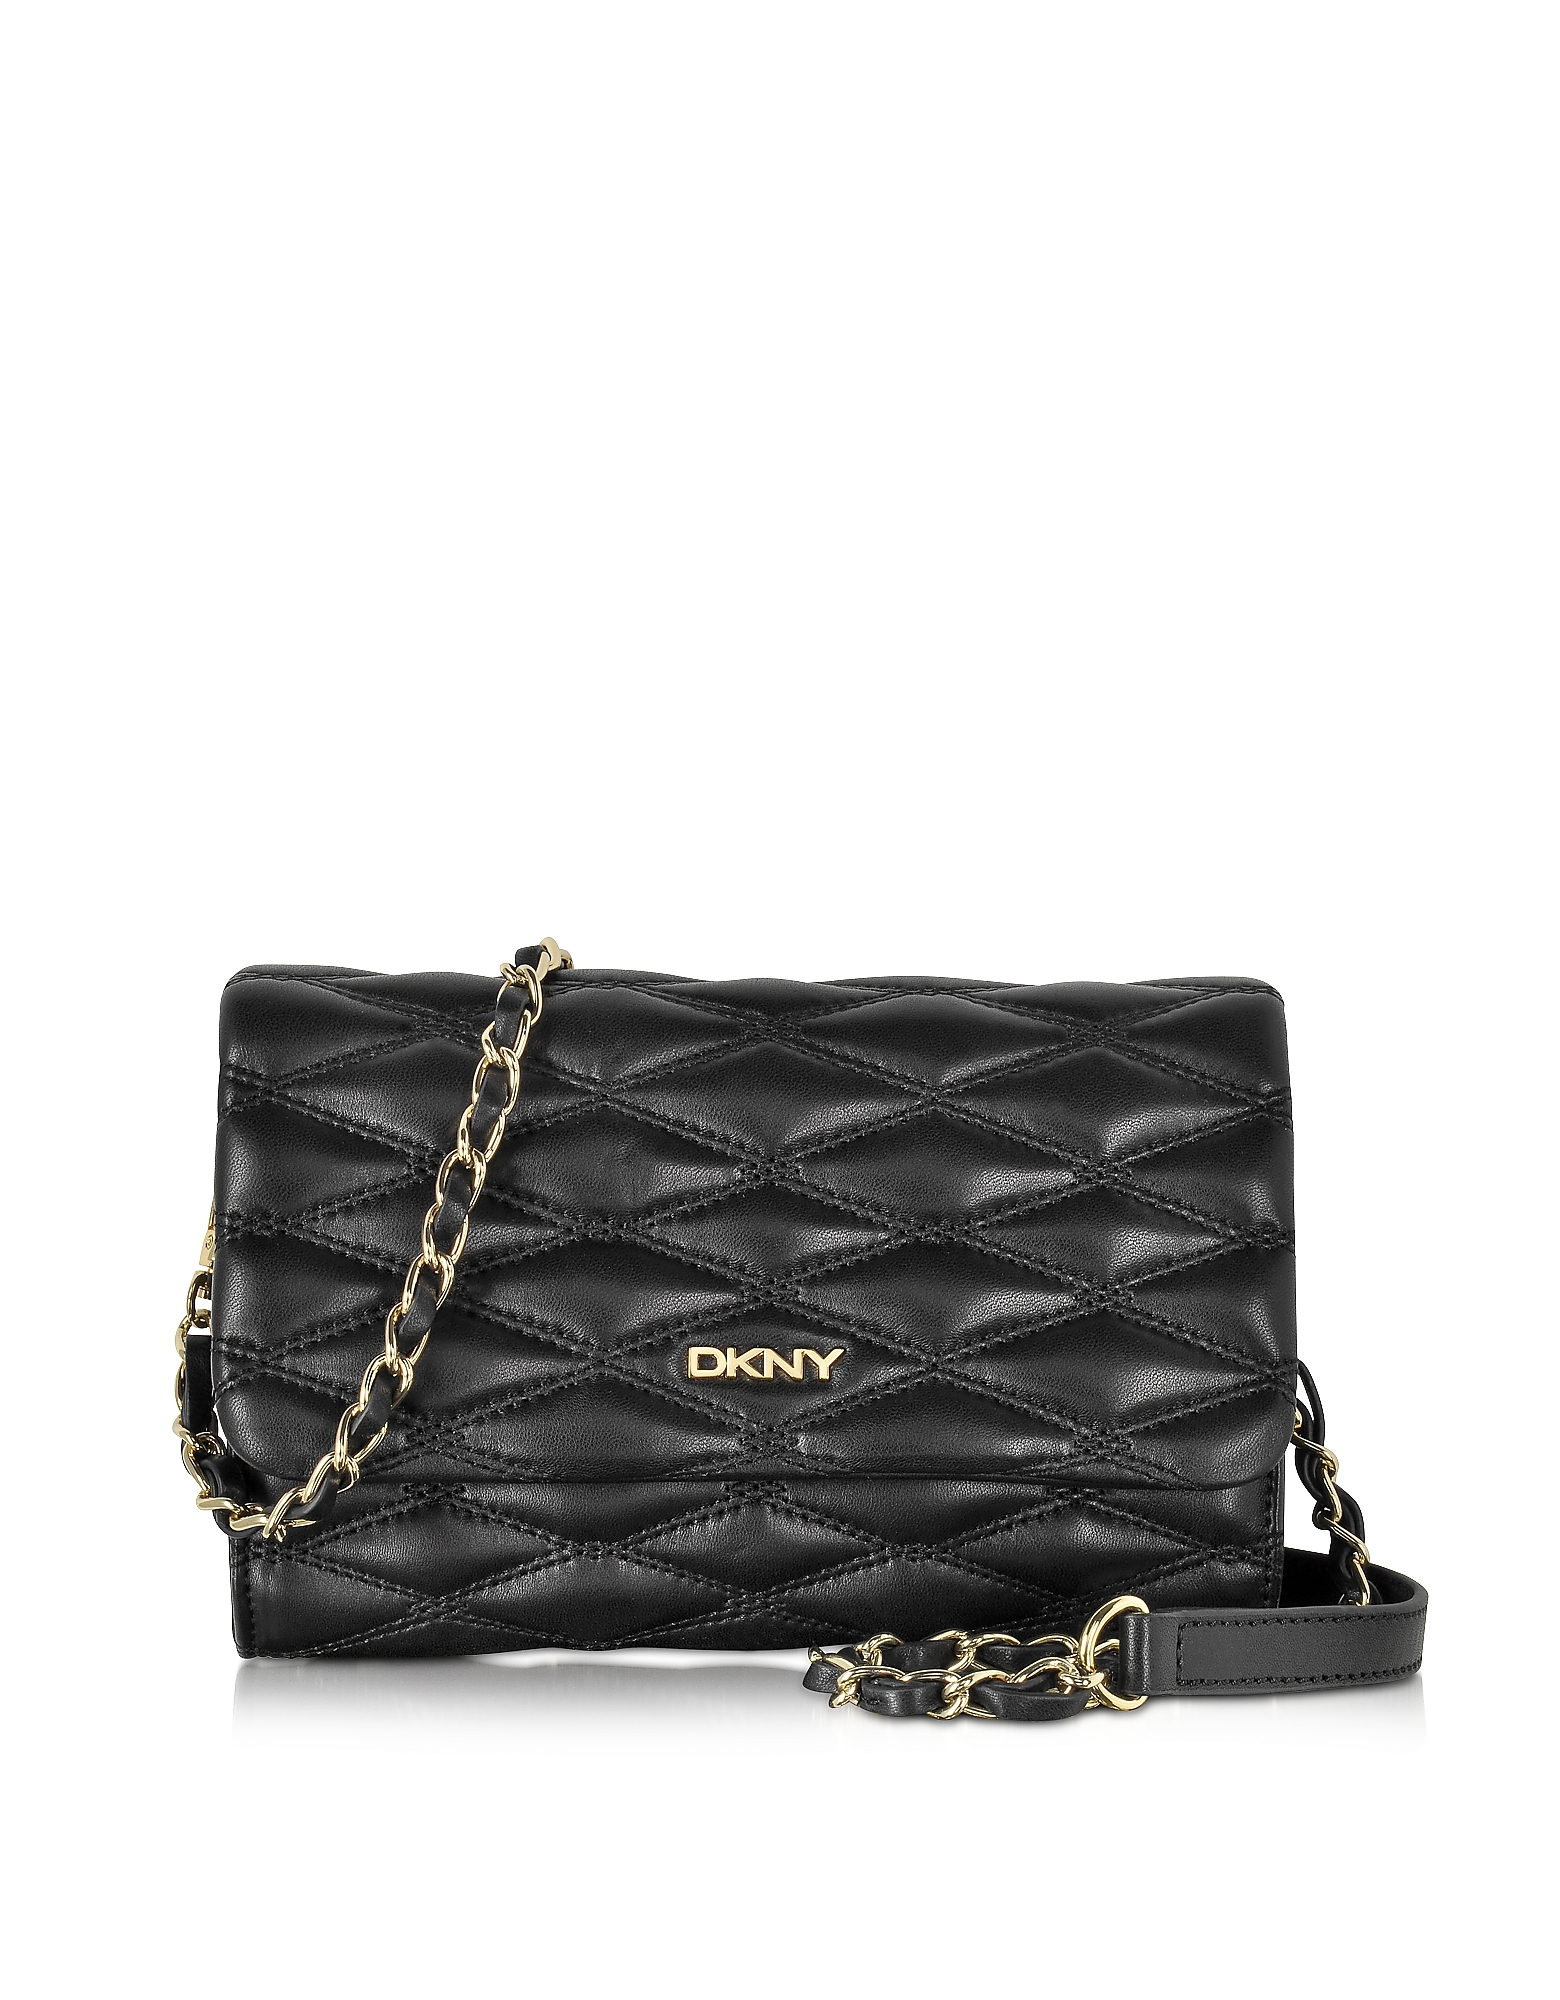 Dkny Black Quilted Leather Small Flap Crossbody Bag In